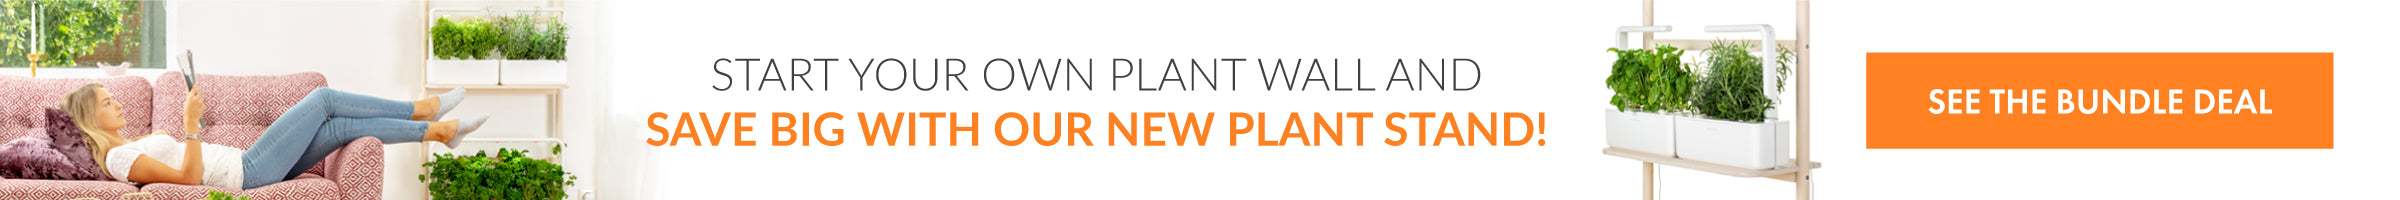 Start your own plant wall and save big with our new Plant Stand!